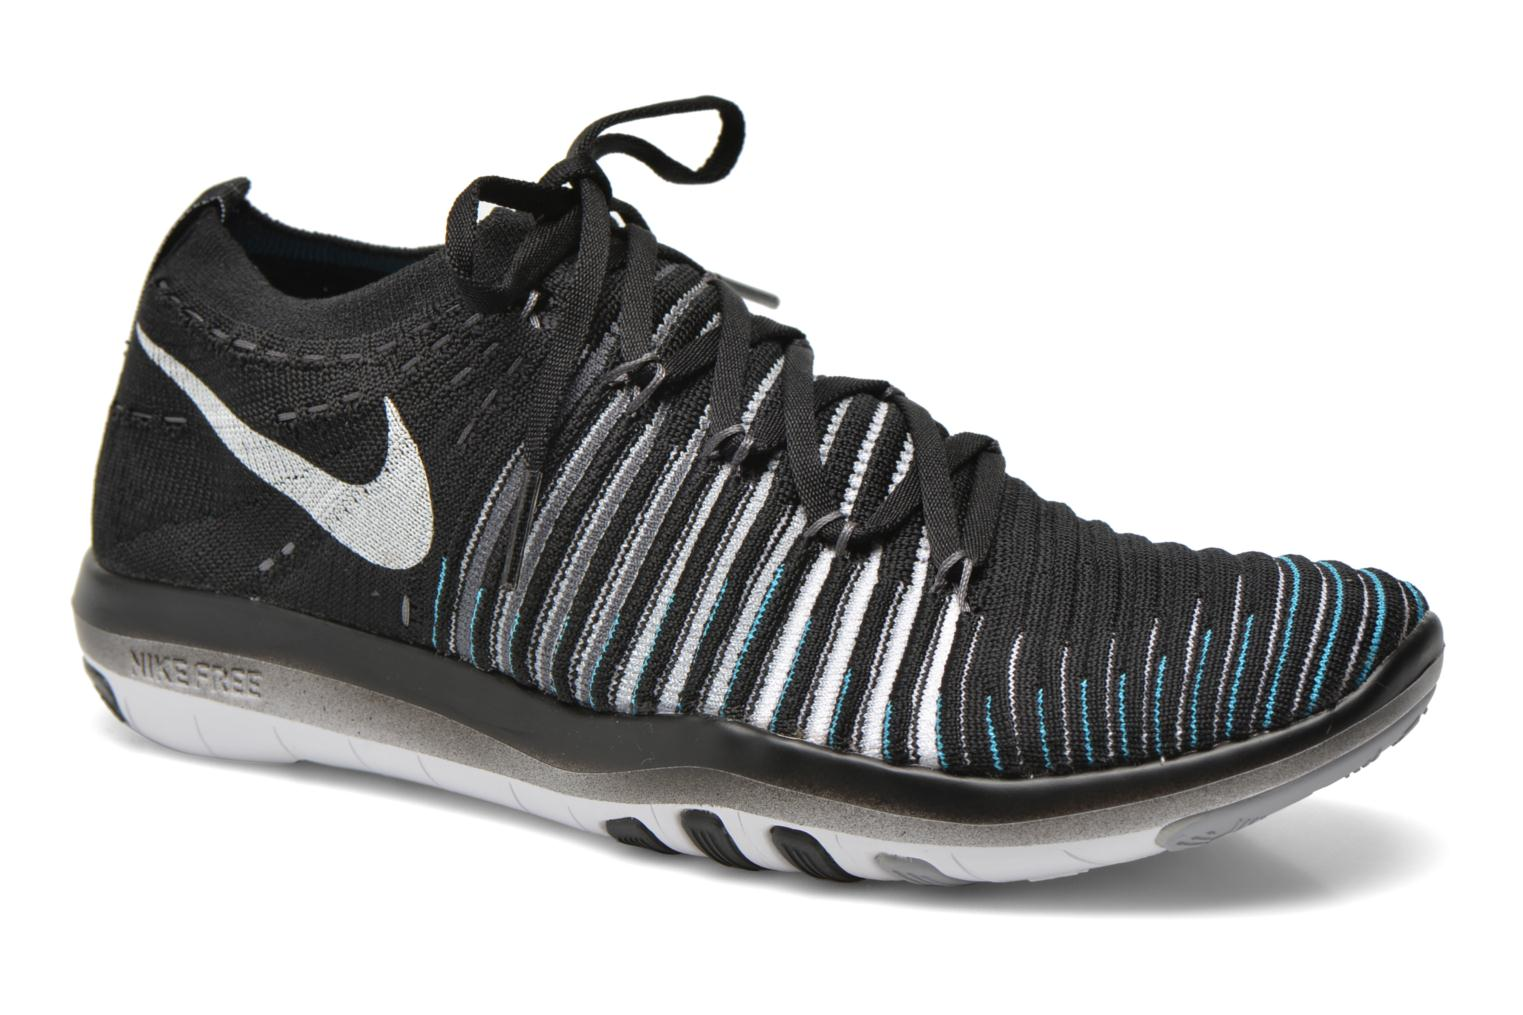 Nike Wm Nike Free Transform Flyknit Nike Sport shoes Women Black/White Wolf Grey Drk Grey